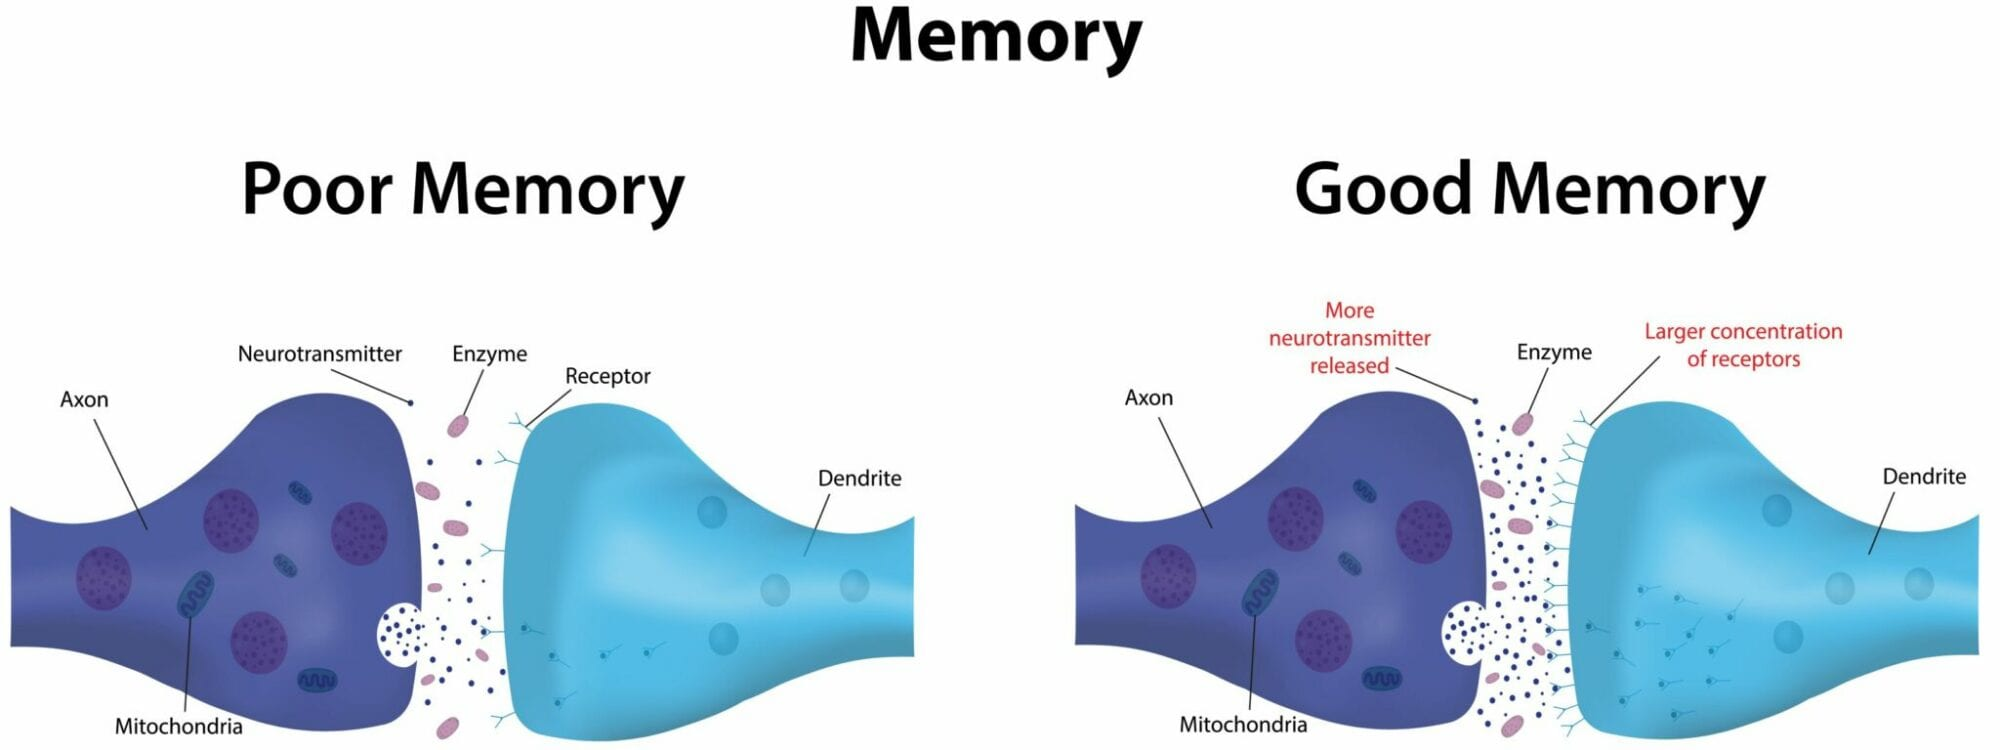 Does Choline Help Prevent Dementia and Alzheimer's? 1